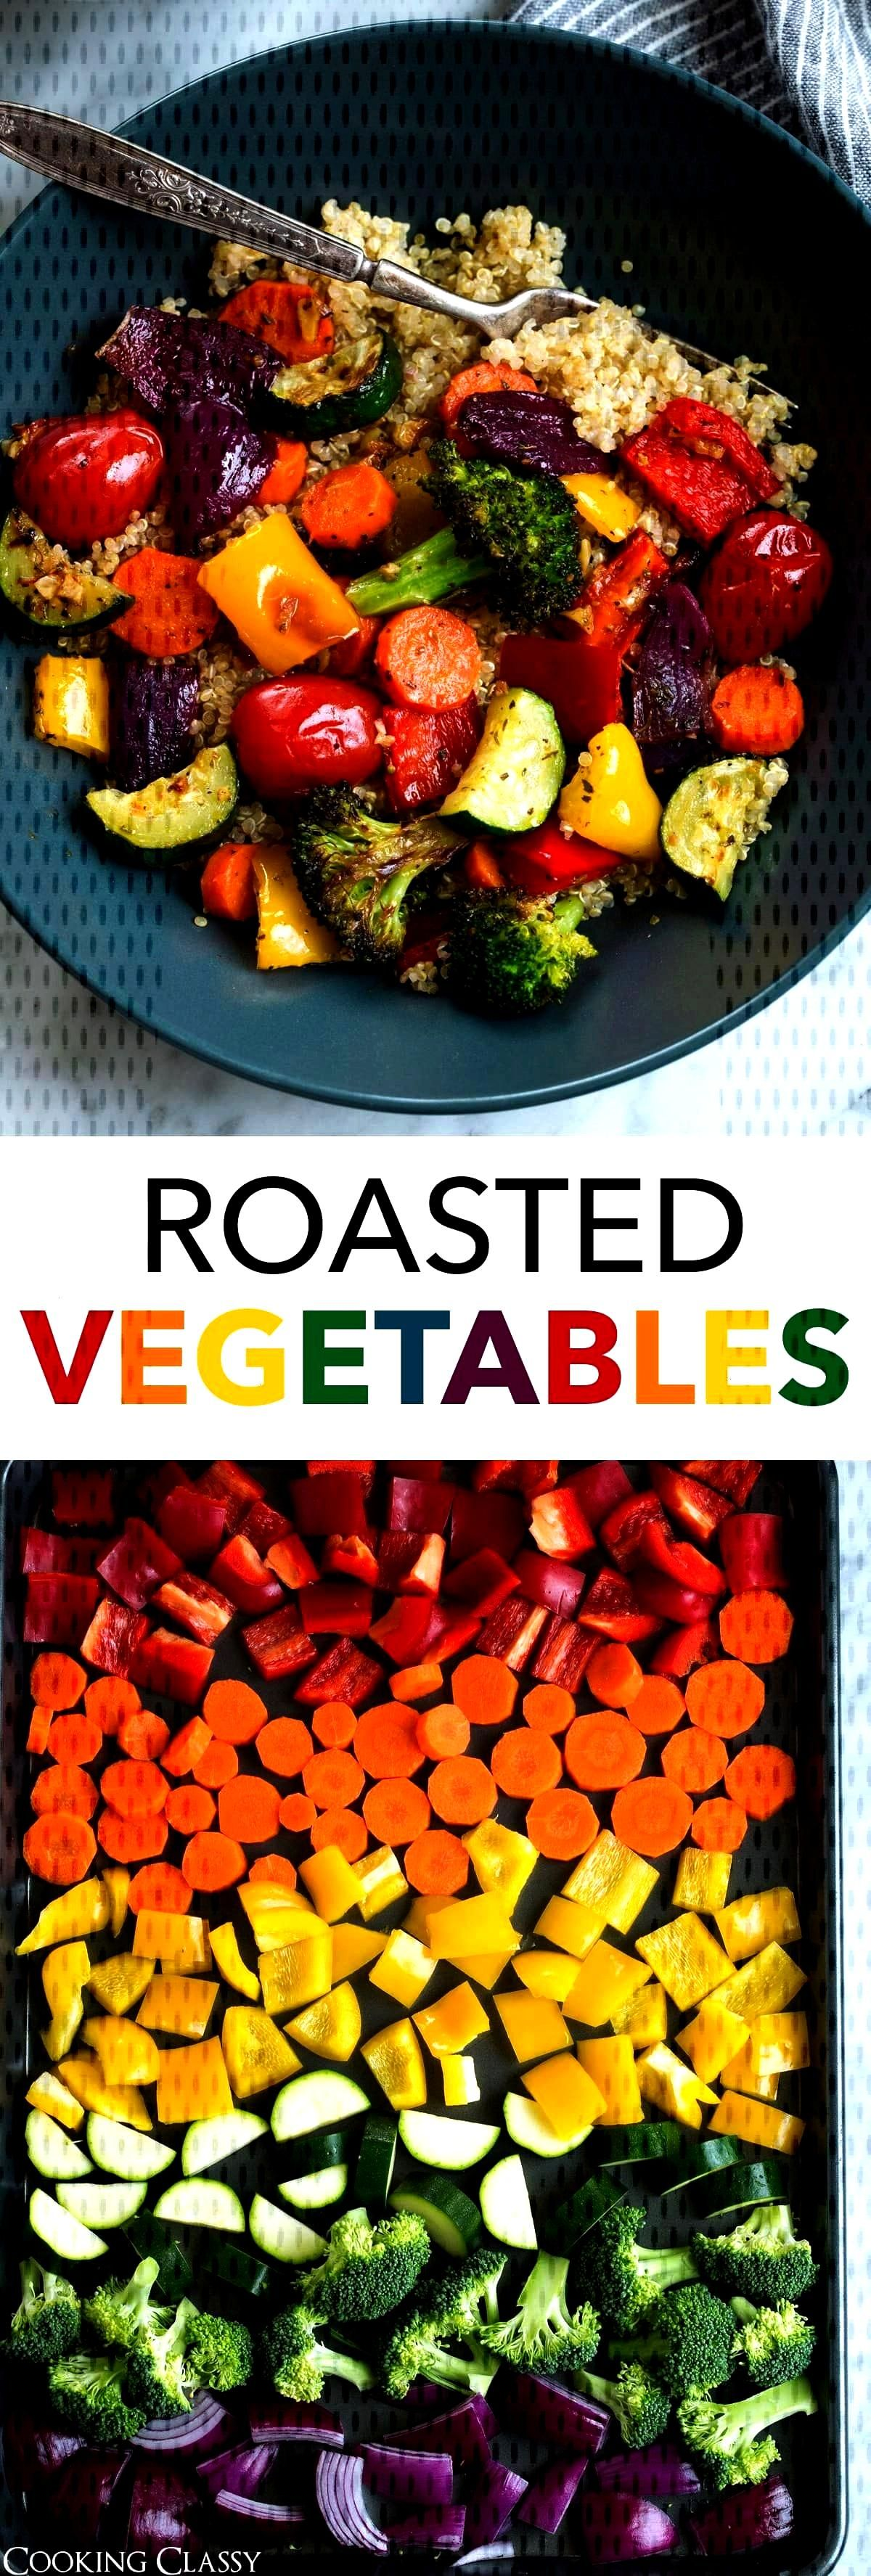 Vegetables - this is hands down the best way to cook vegetables. When you roast them it adds depth